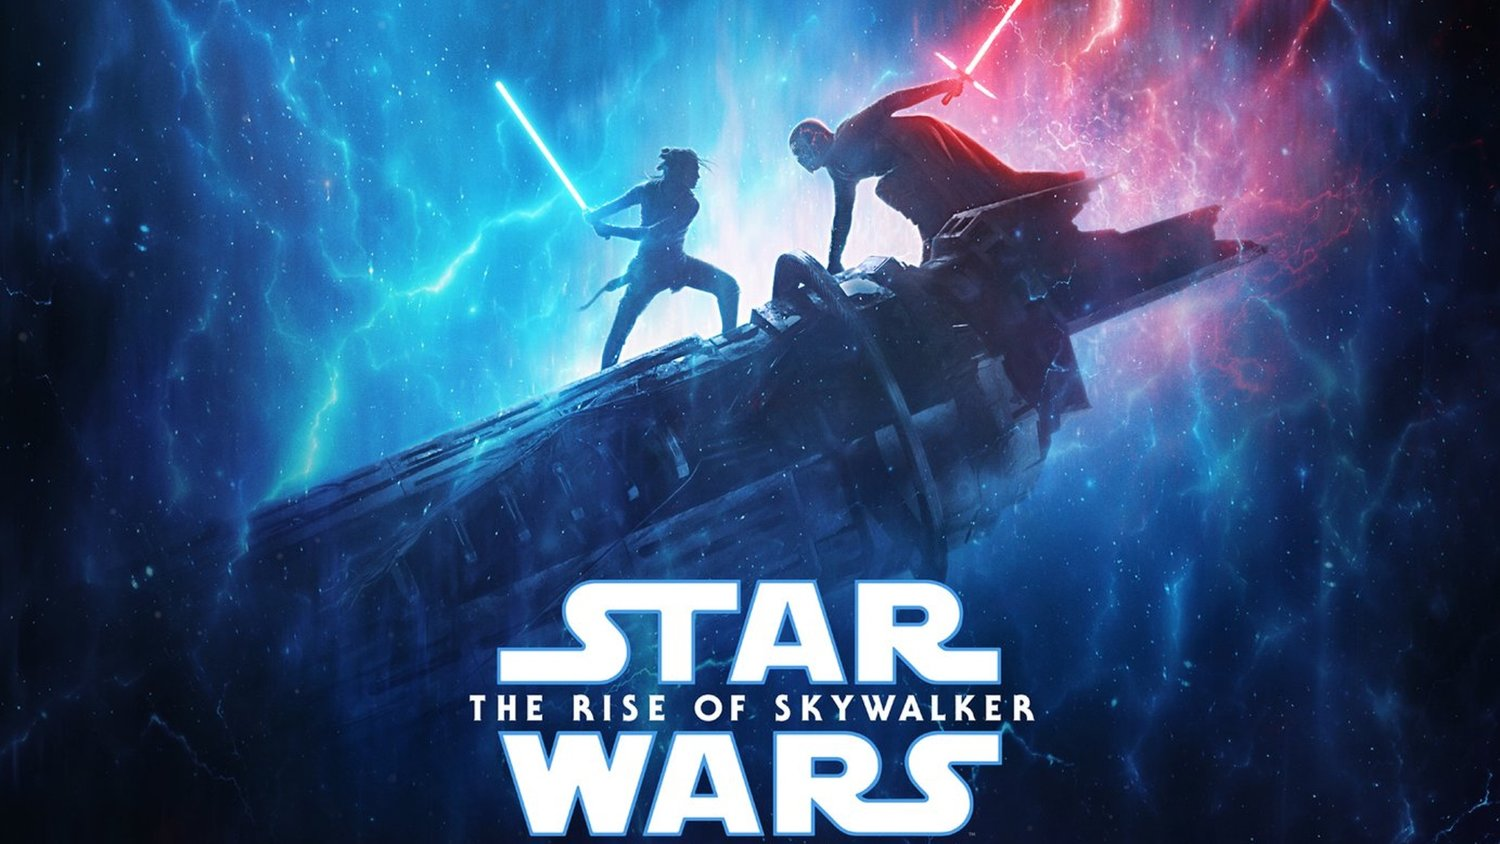 Hd Watch Star Wars The Rise Of Skywalker 2019 Hq Online Full Movie For Free Line Up